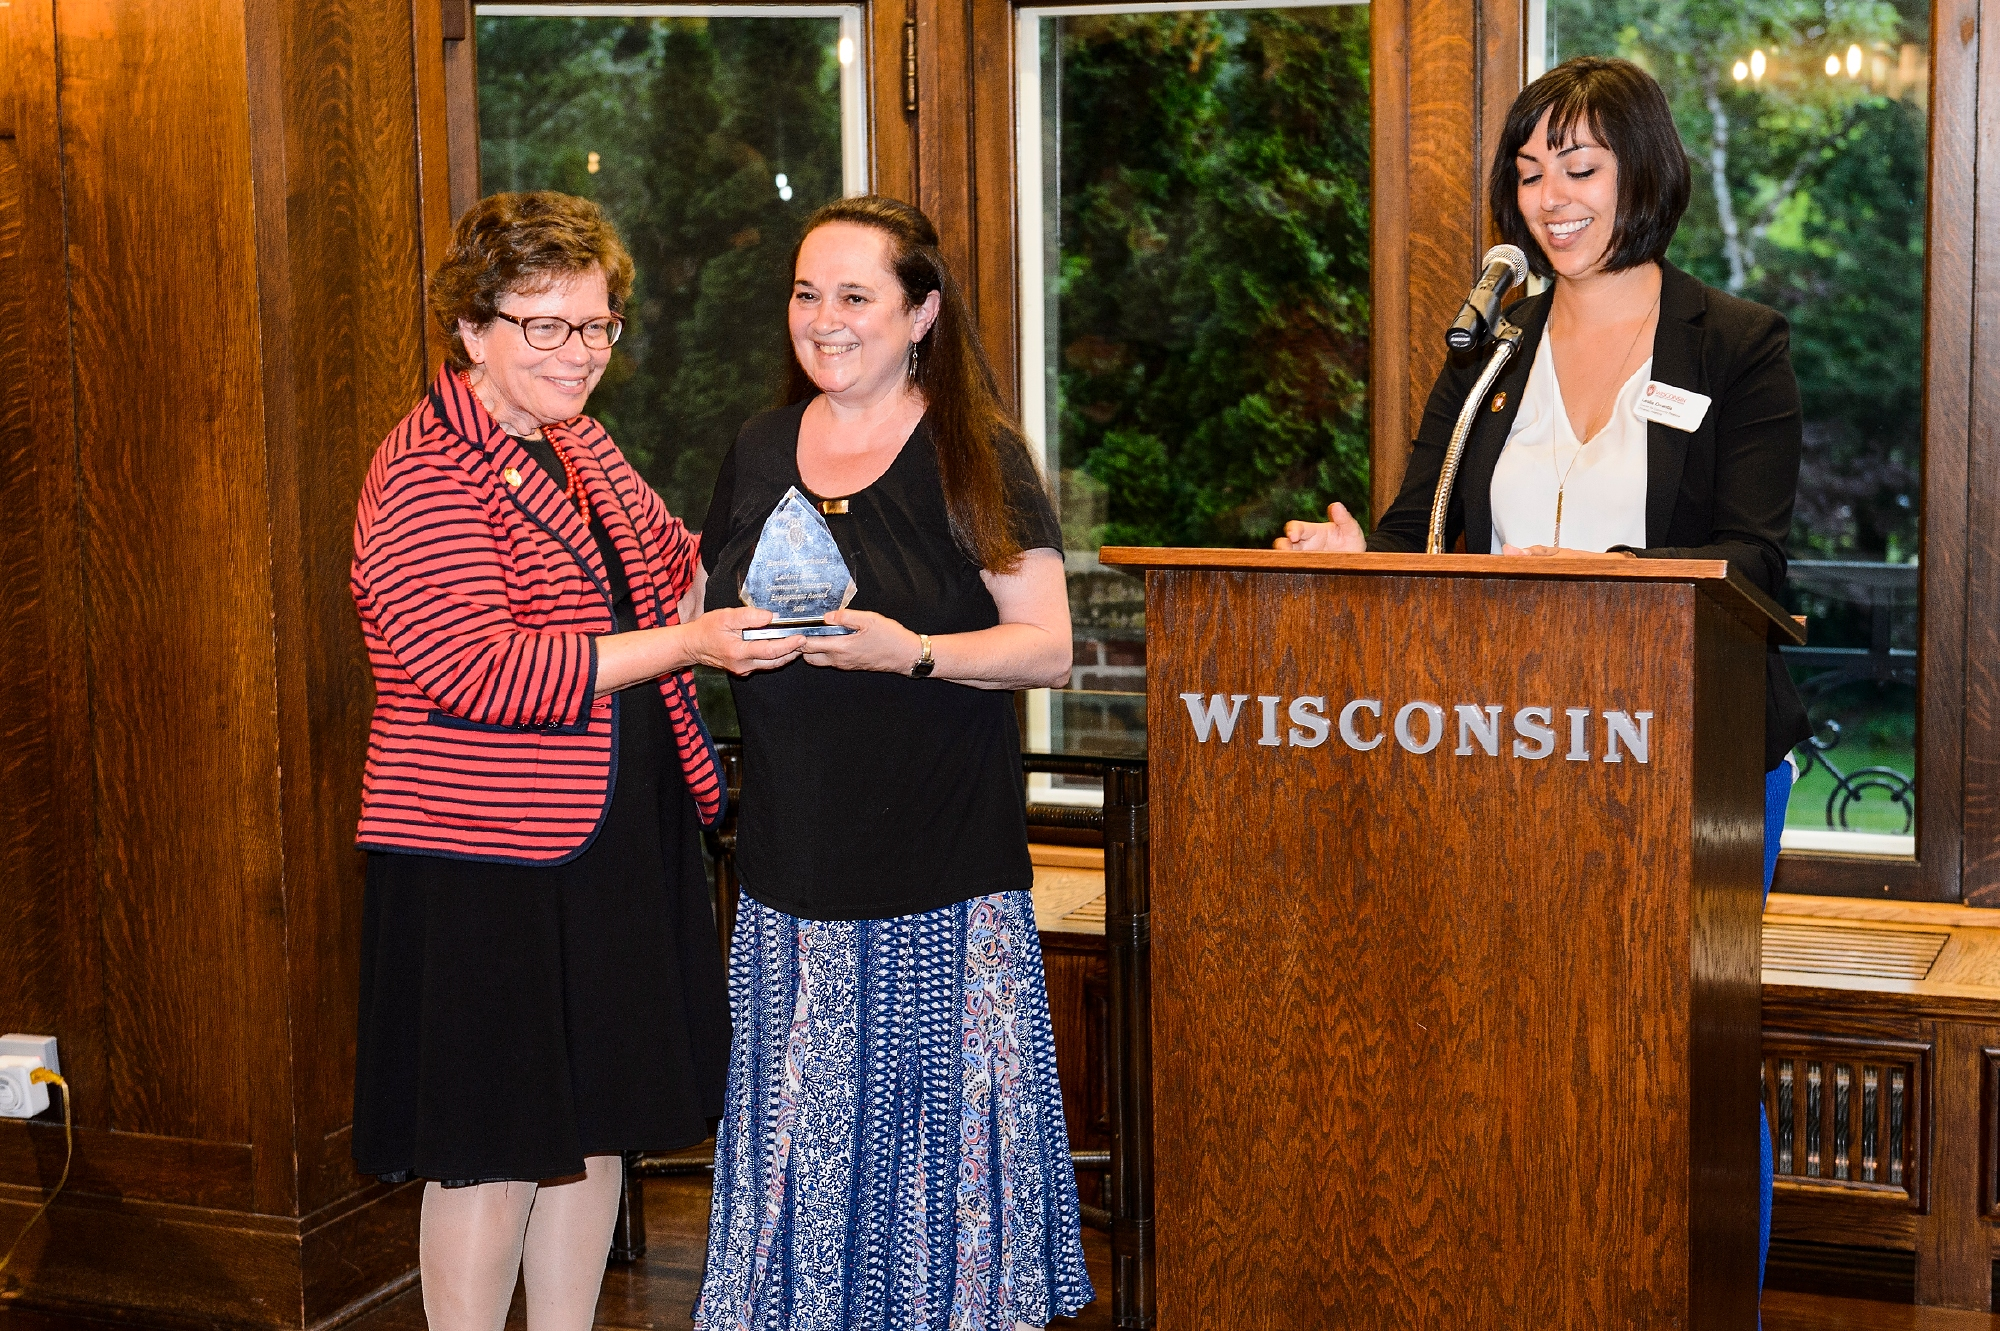 Emily Auerbach, professor of English at UW–Madison, receives the 2017 LaMarr Billups Community-University Engagement Award during a 2017 Community-University Partnership Award event at Olin House, the Chancellor's residence at the University of Wisconsin–Madison on June 28, 2017. Presenting the awards are UW–Madison Chancellor Rebecca Blank and Leslie Orrantia, UW–Madison director of community relations. (Photo by Jeff Miller / UW–Madison)